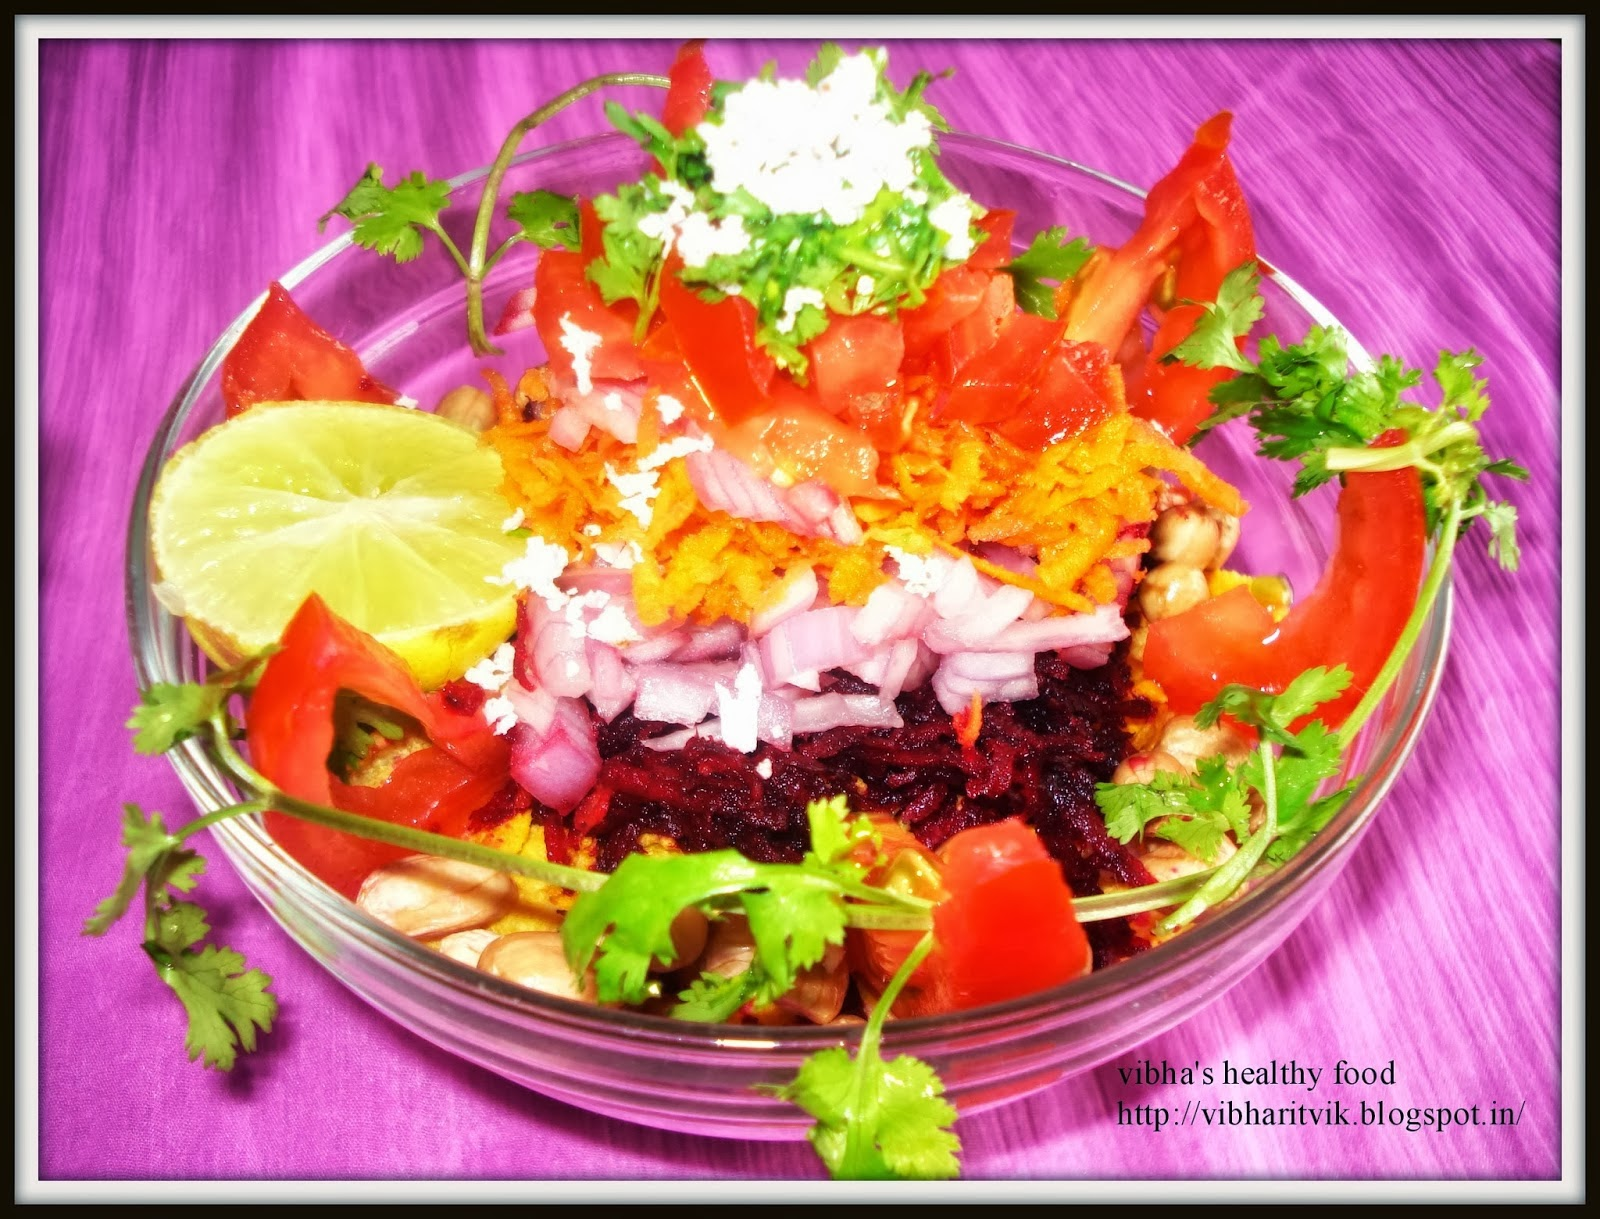 http://vibharitvik.blogspot.in/2014/02/fresh-veg-snacks.html#uds-search-results